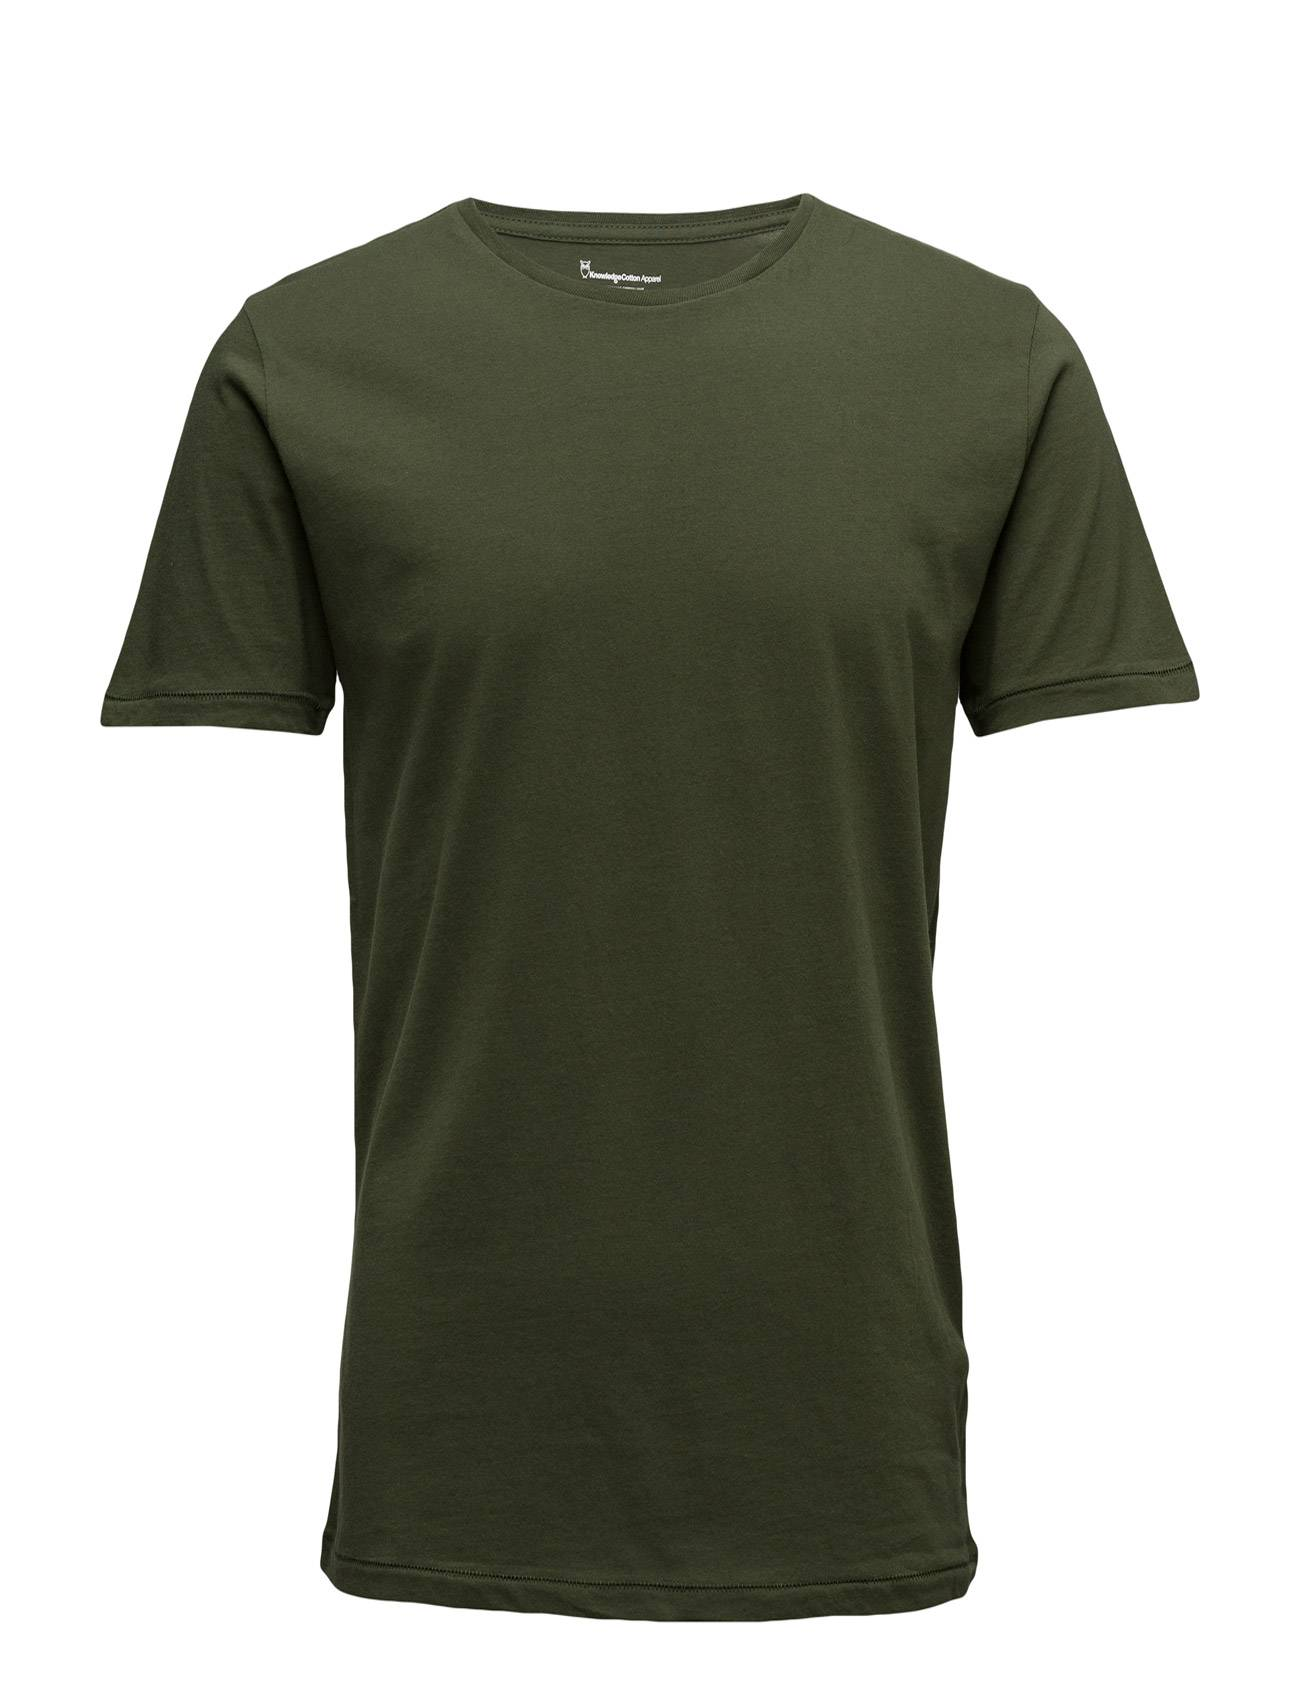 Knowledge Cotton Apparel Basic Regular Fit O-Neck Tee Gots